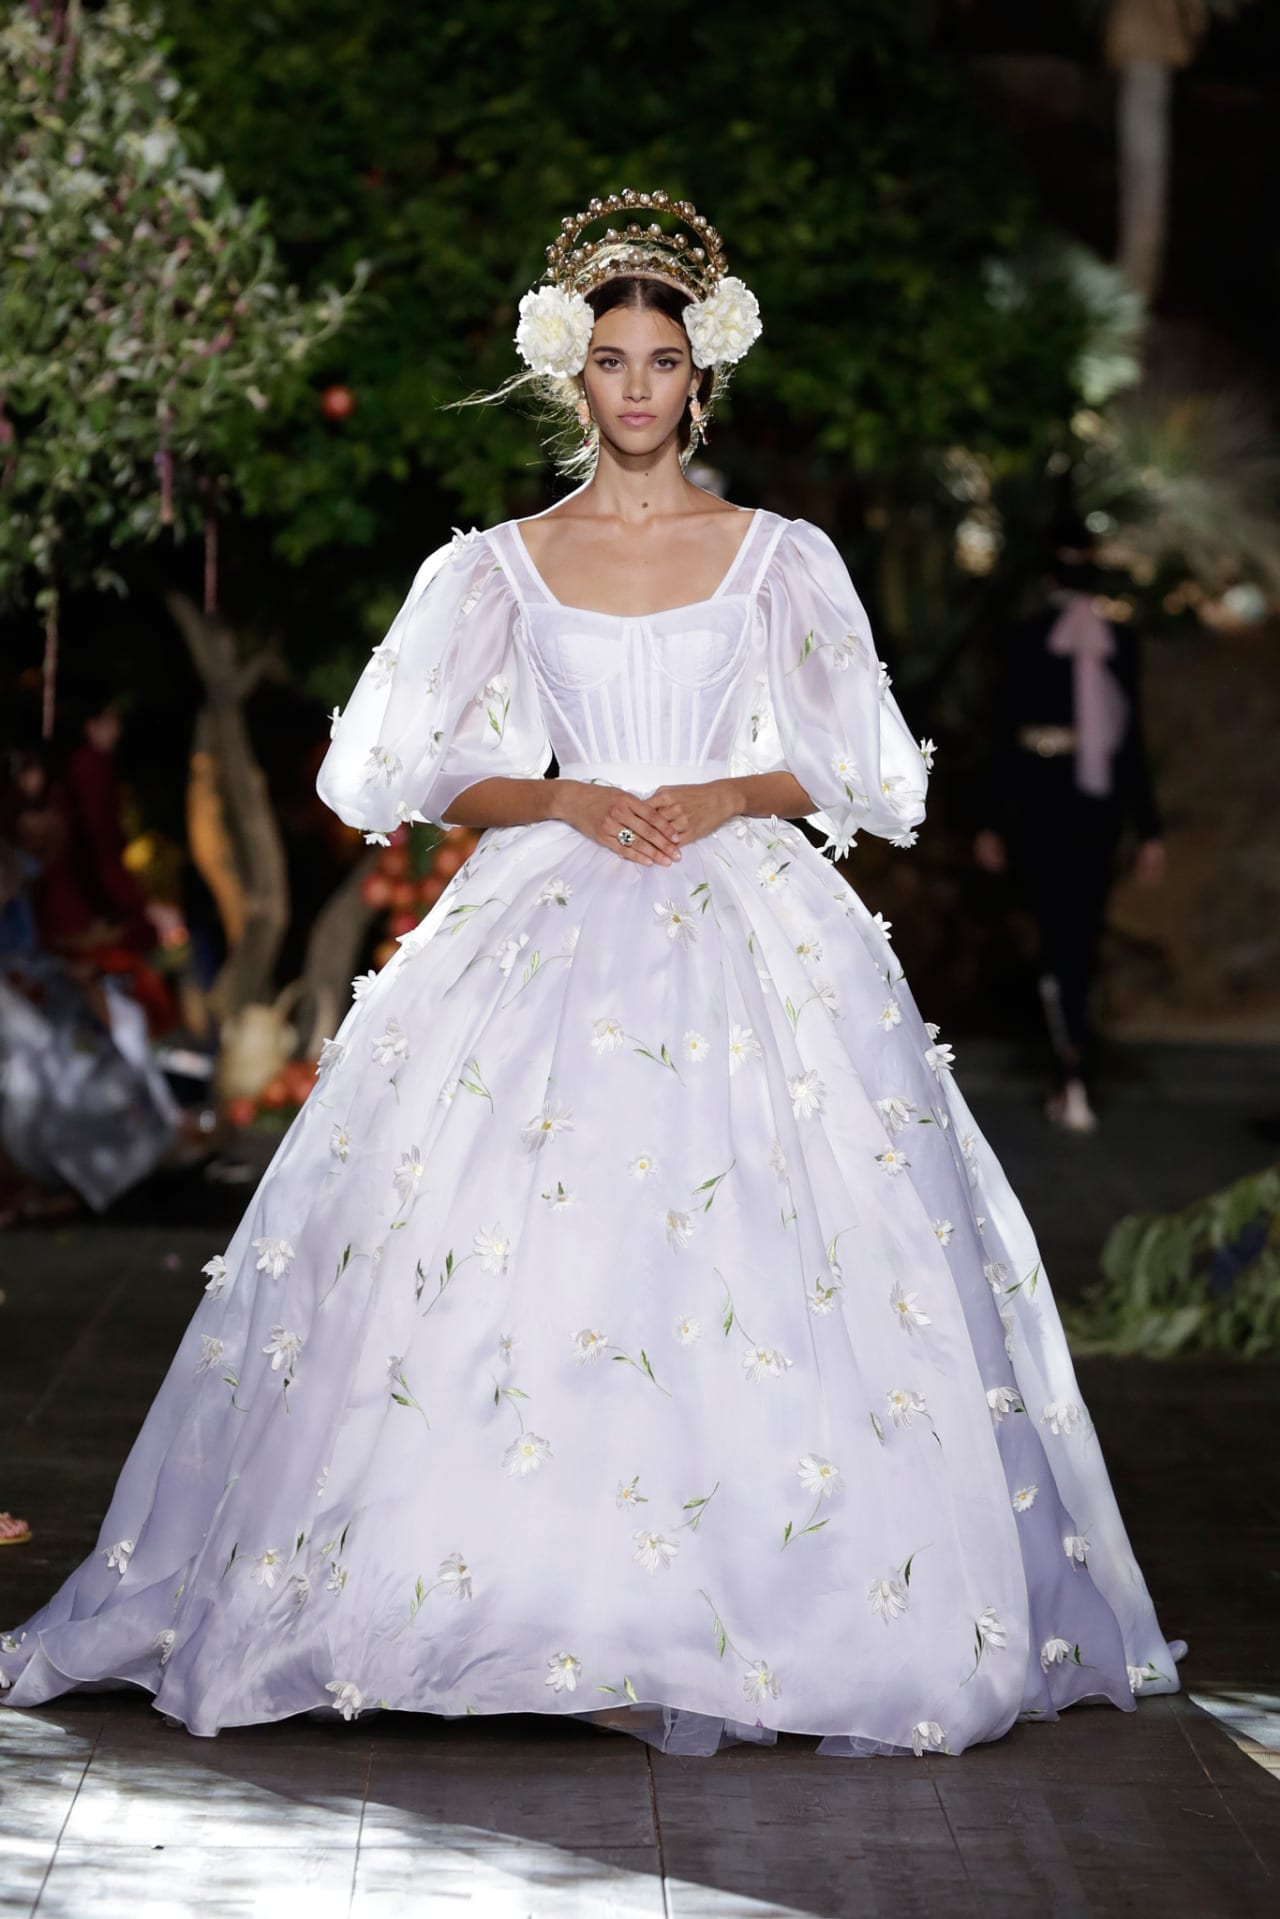 dolcegabbana altamodam 30 anni di Dolce & Gabbana, dolce gabbana napoli alta moda, theladycracy.it, fashion blog 2016, fashion blogger italia 2016, fashion blogger italiane, fashion blog, fashion blogger famose 2016, fashion influencer, elisa bellino, dolce & gabbana alta moda 2016